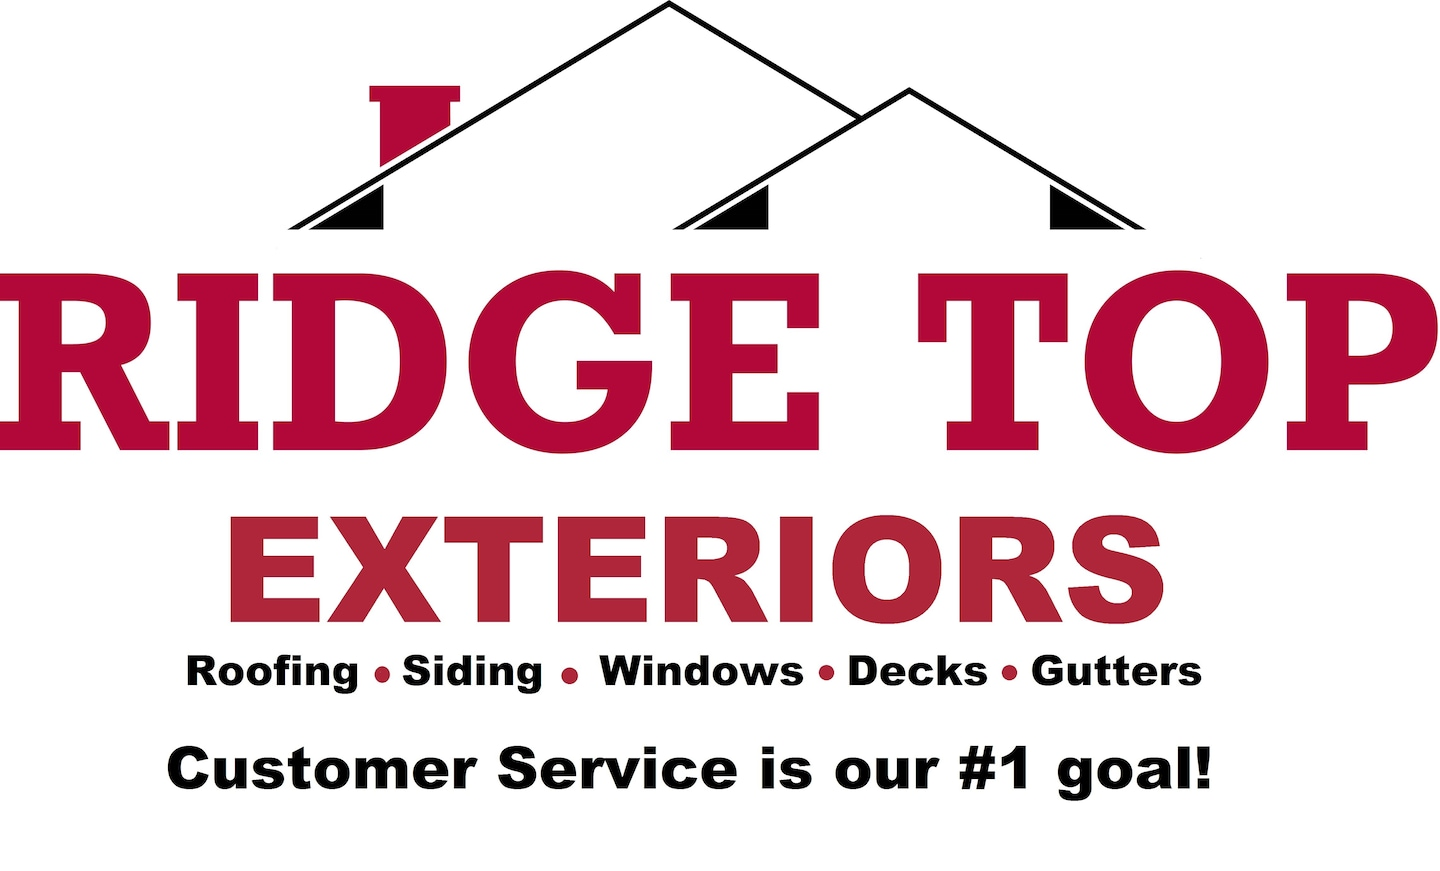 Ridge Top Exteriors Inc